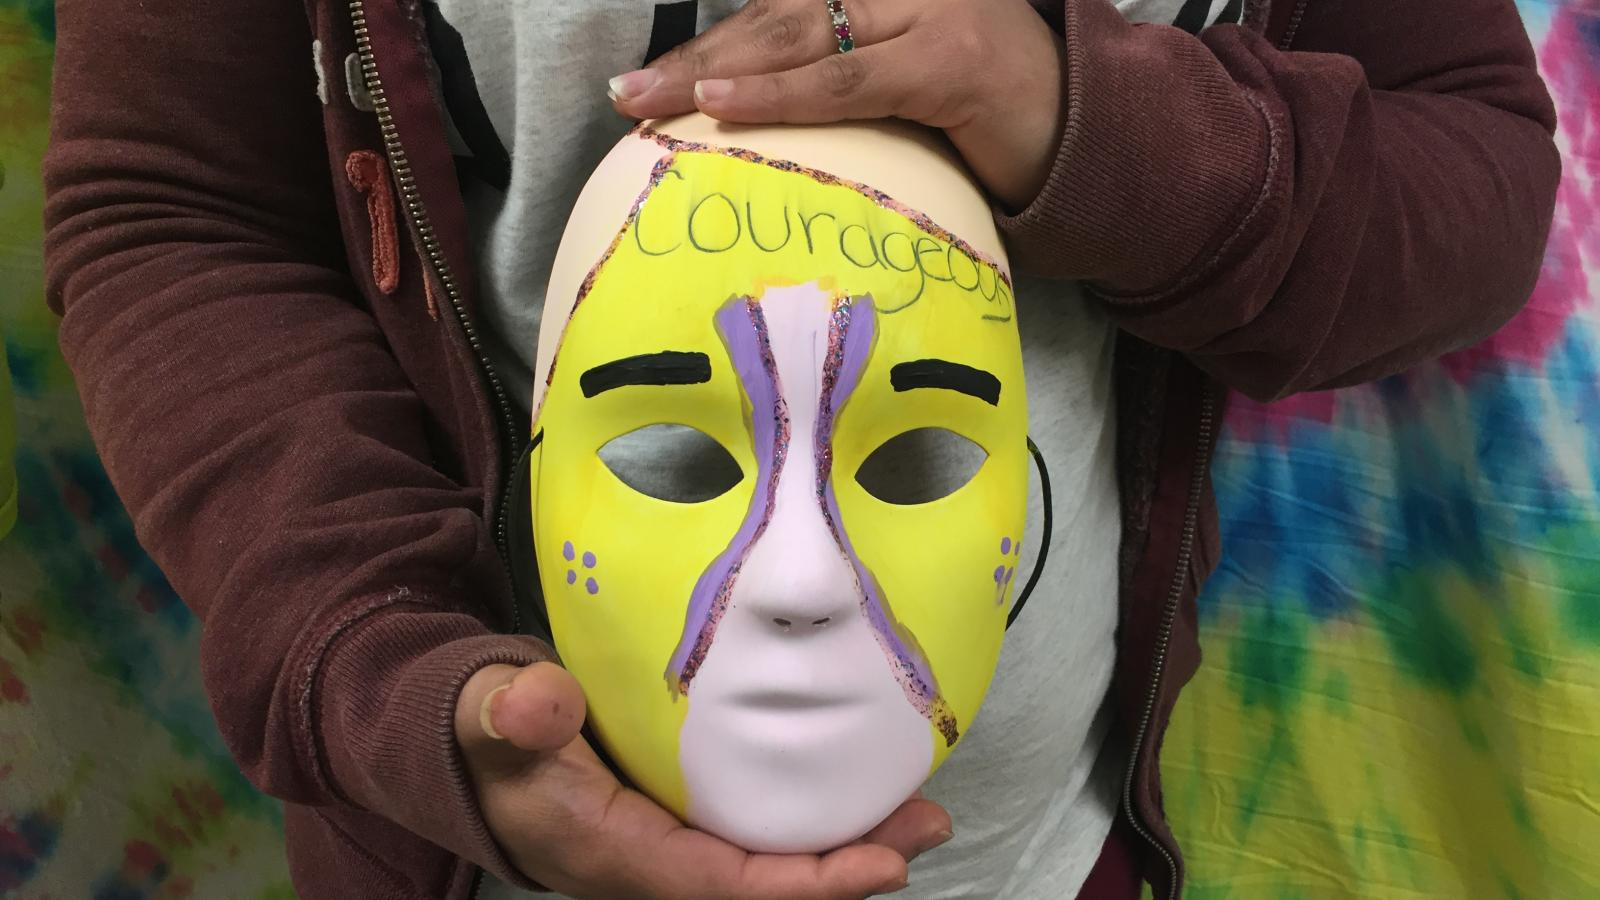 Close-up picture of Kaylena's art therapy mask as she holds it.